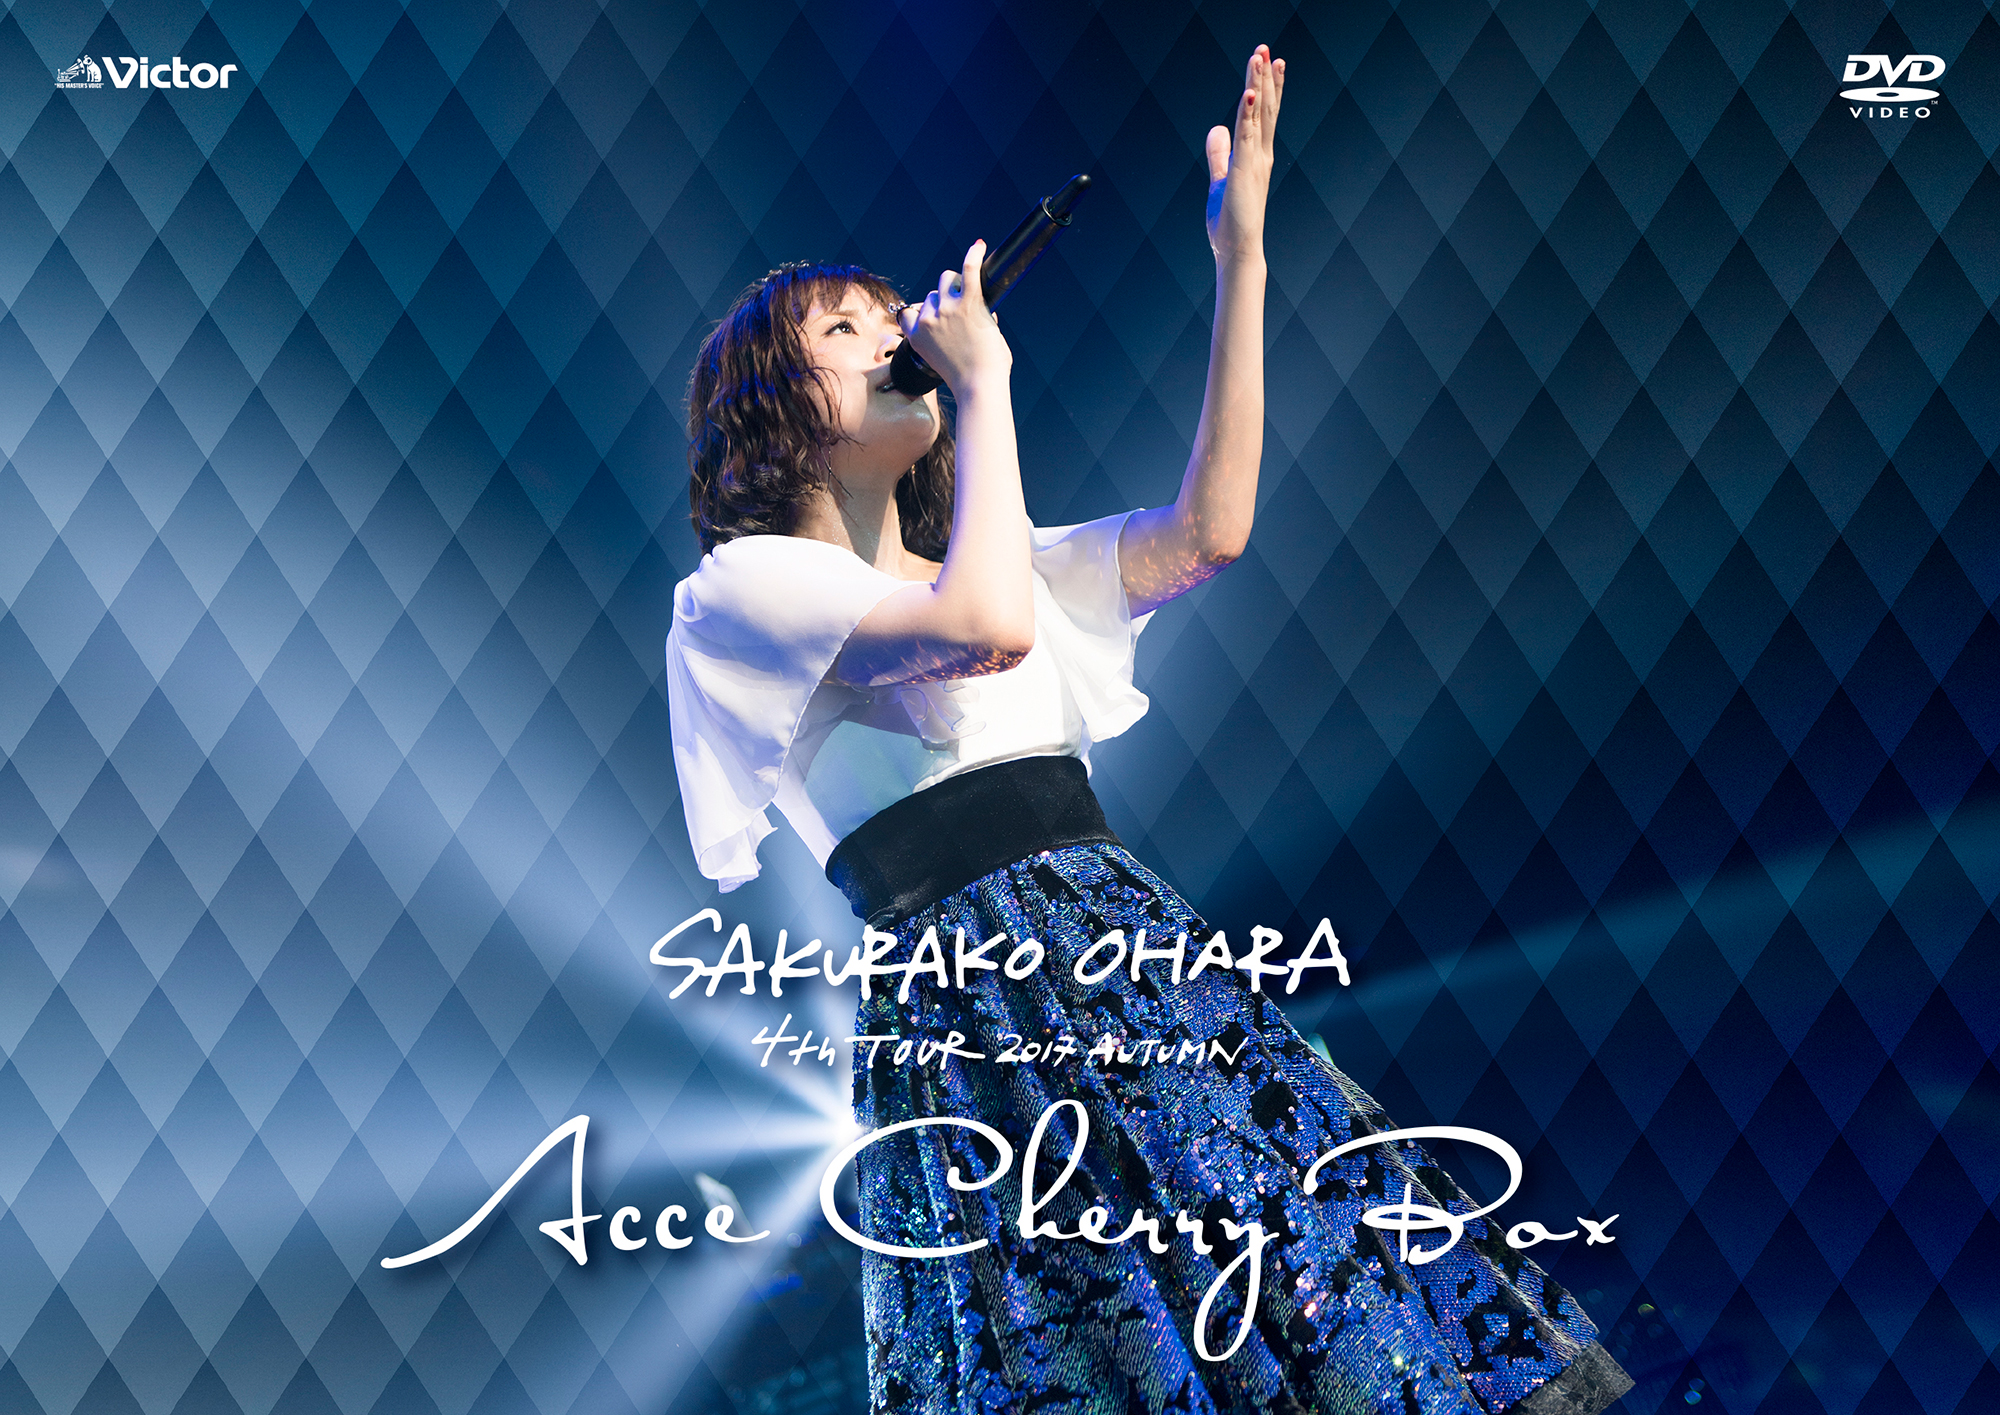 「大原櫻子 4th TOUR 2017 AUTUMN ~ACCECHERRY BOX~」DVD通常盤